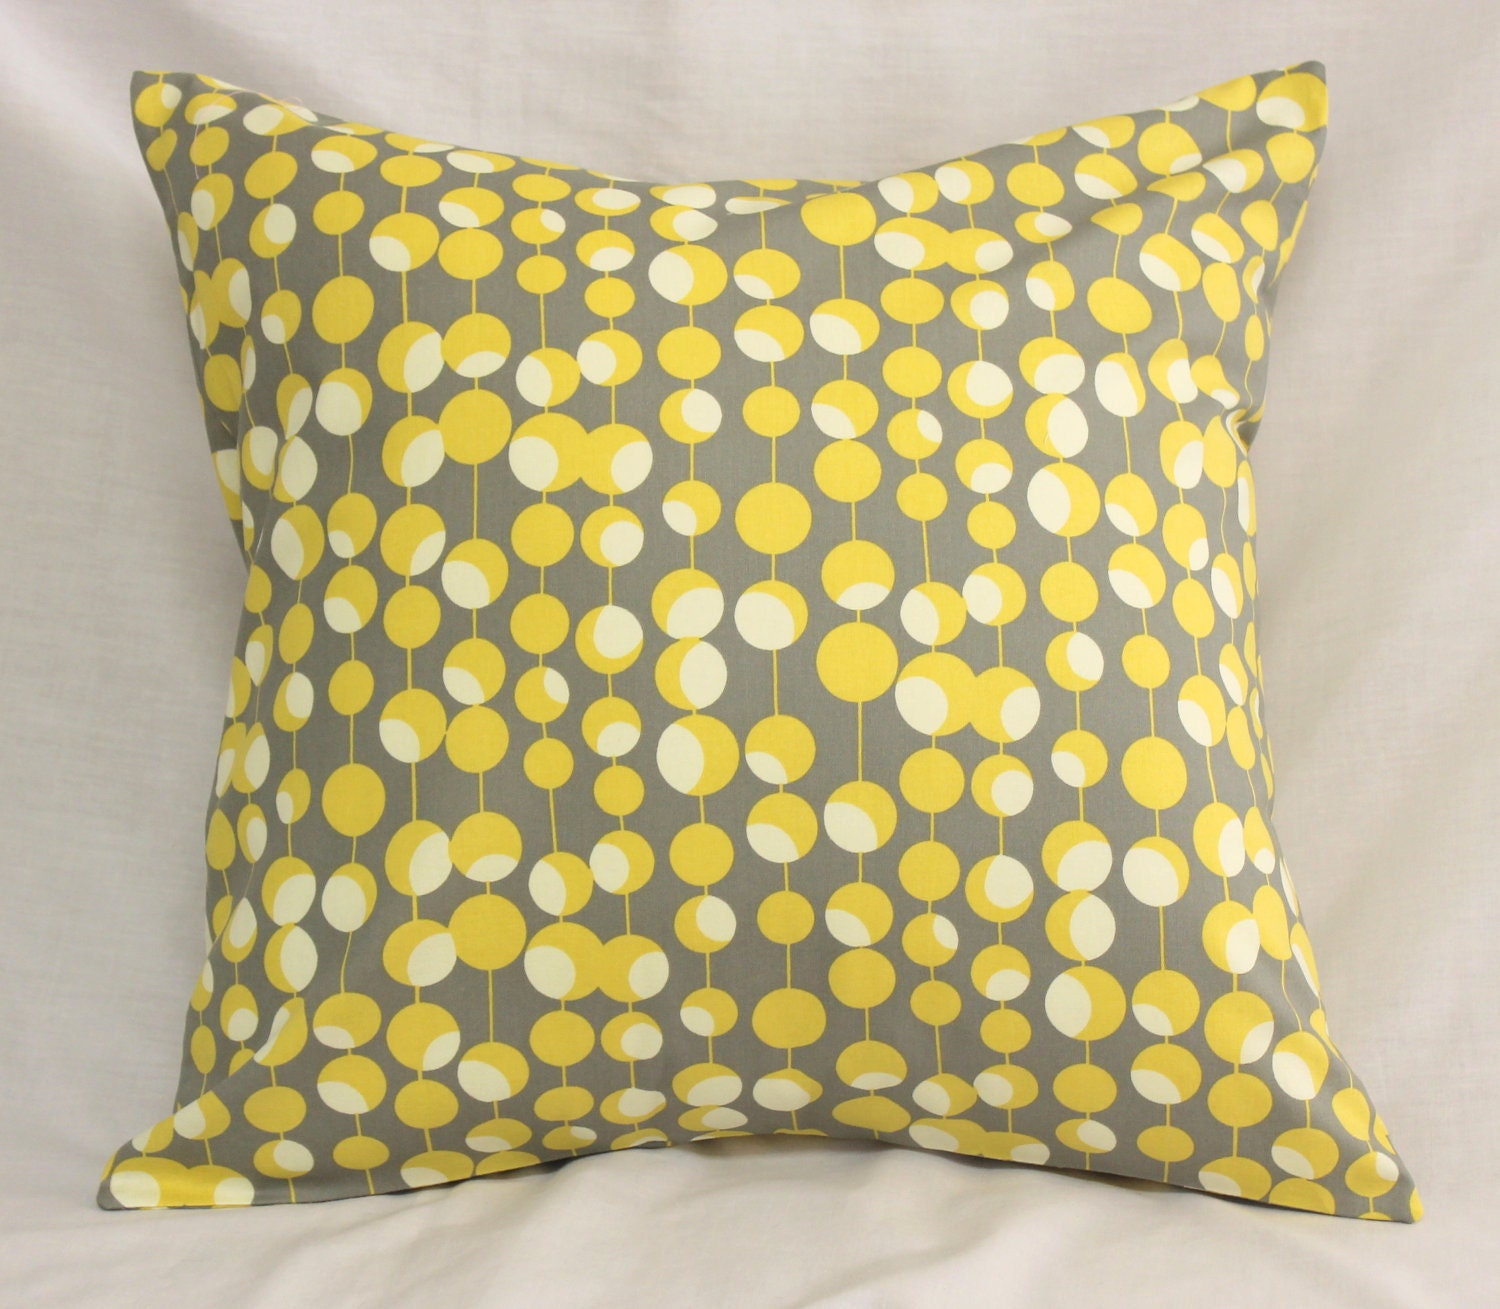 Decorative Pillows In Yellow : Decorative Pillow Covers Dijon Mustard Yellow & Gray